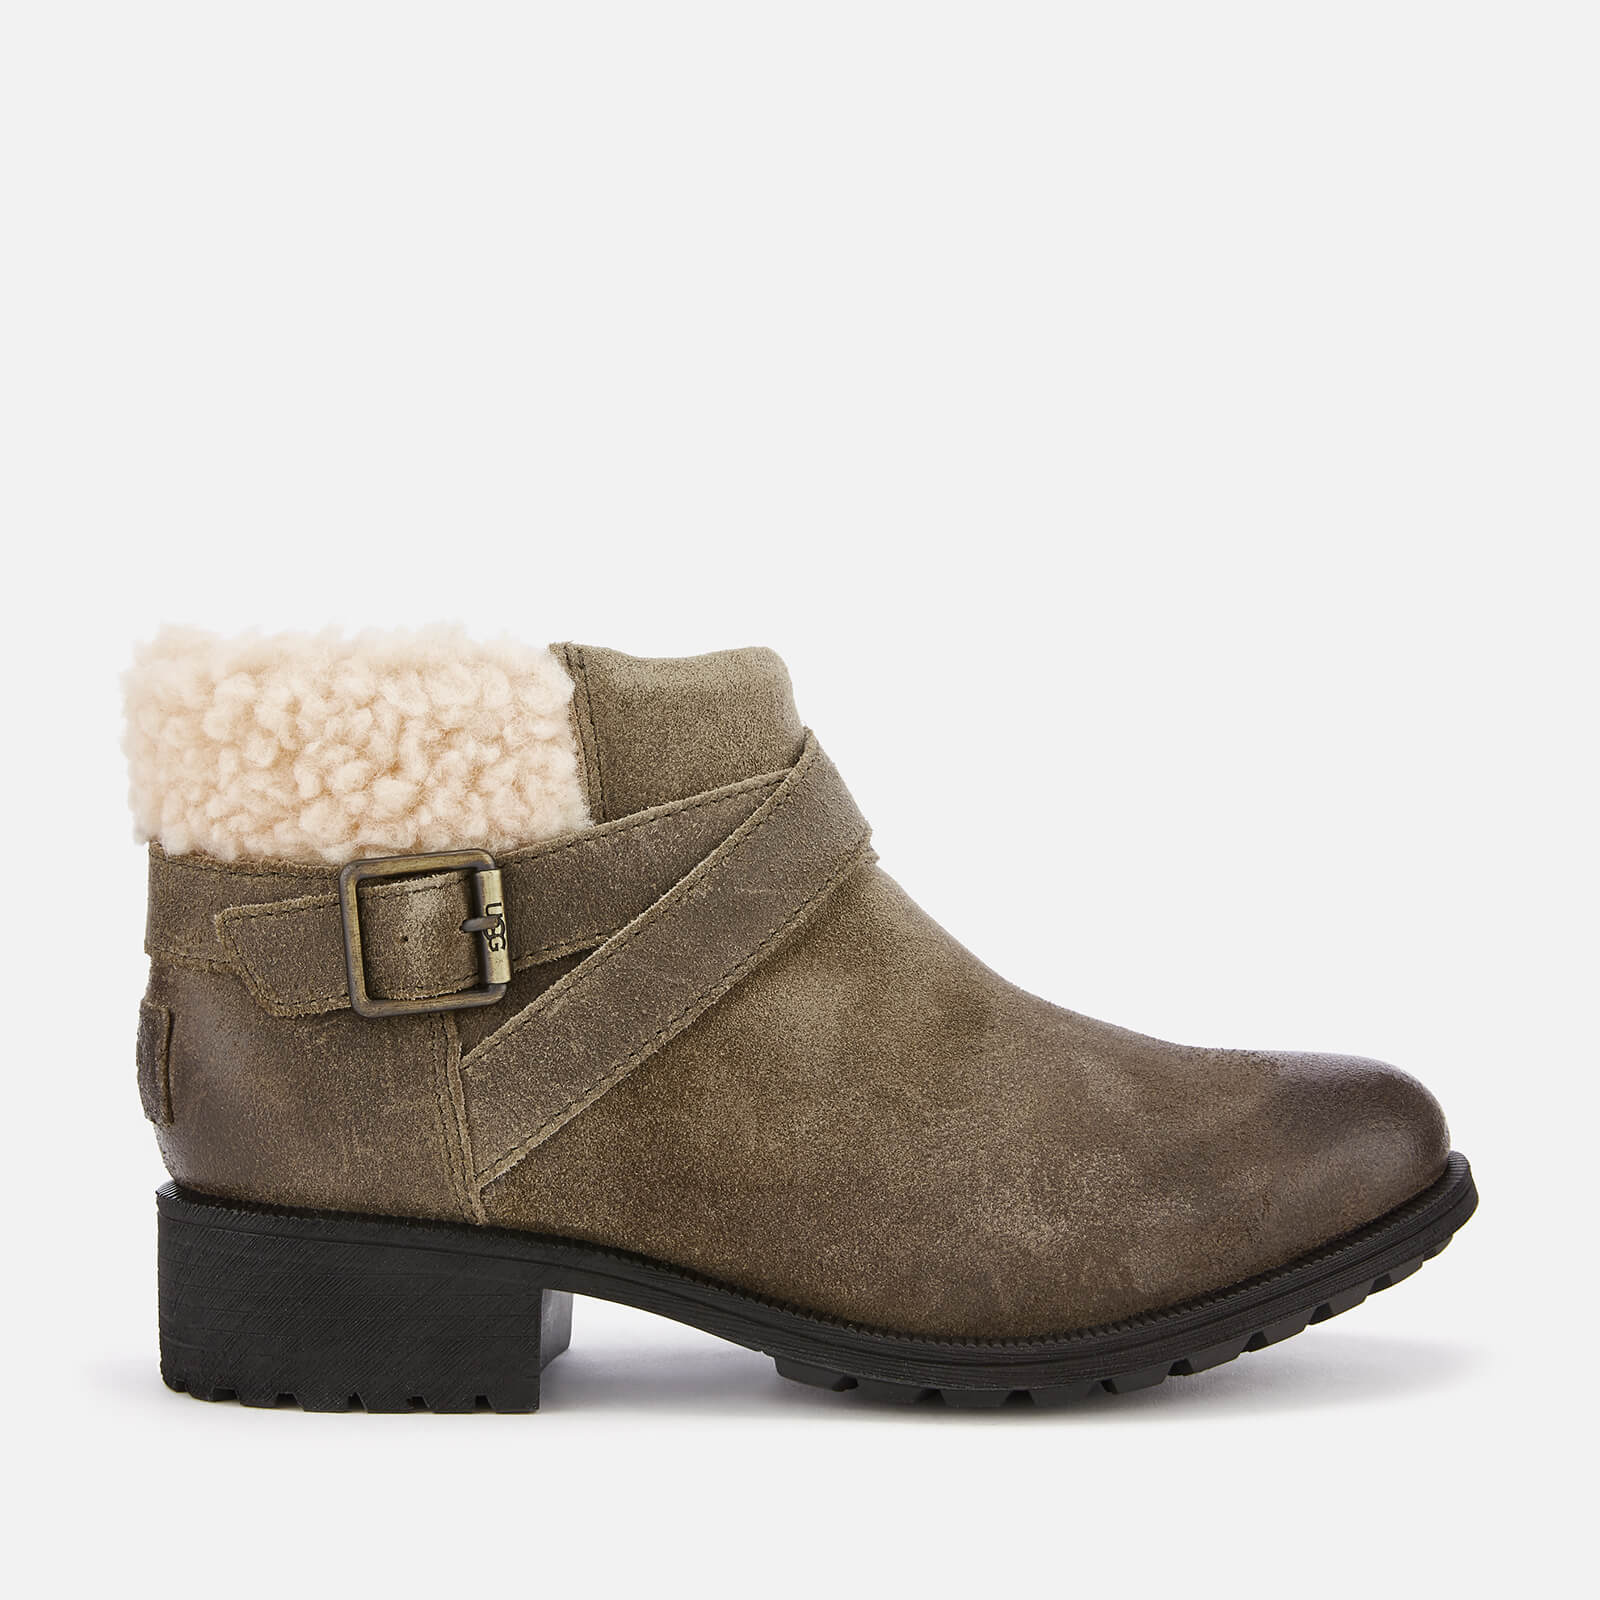 8e8b3f3369b UGG Women's Benson Waterproof Leather Ankle Boots - Dove